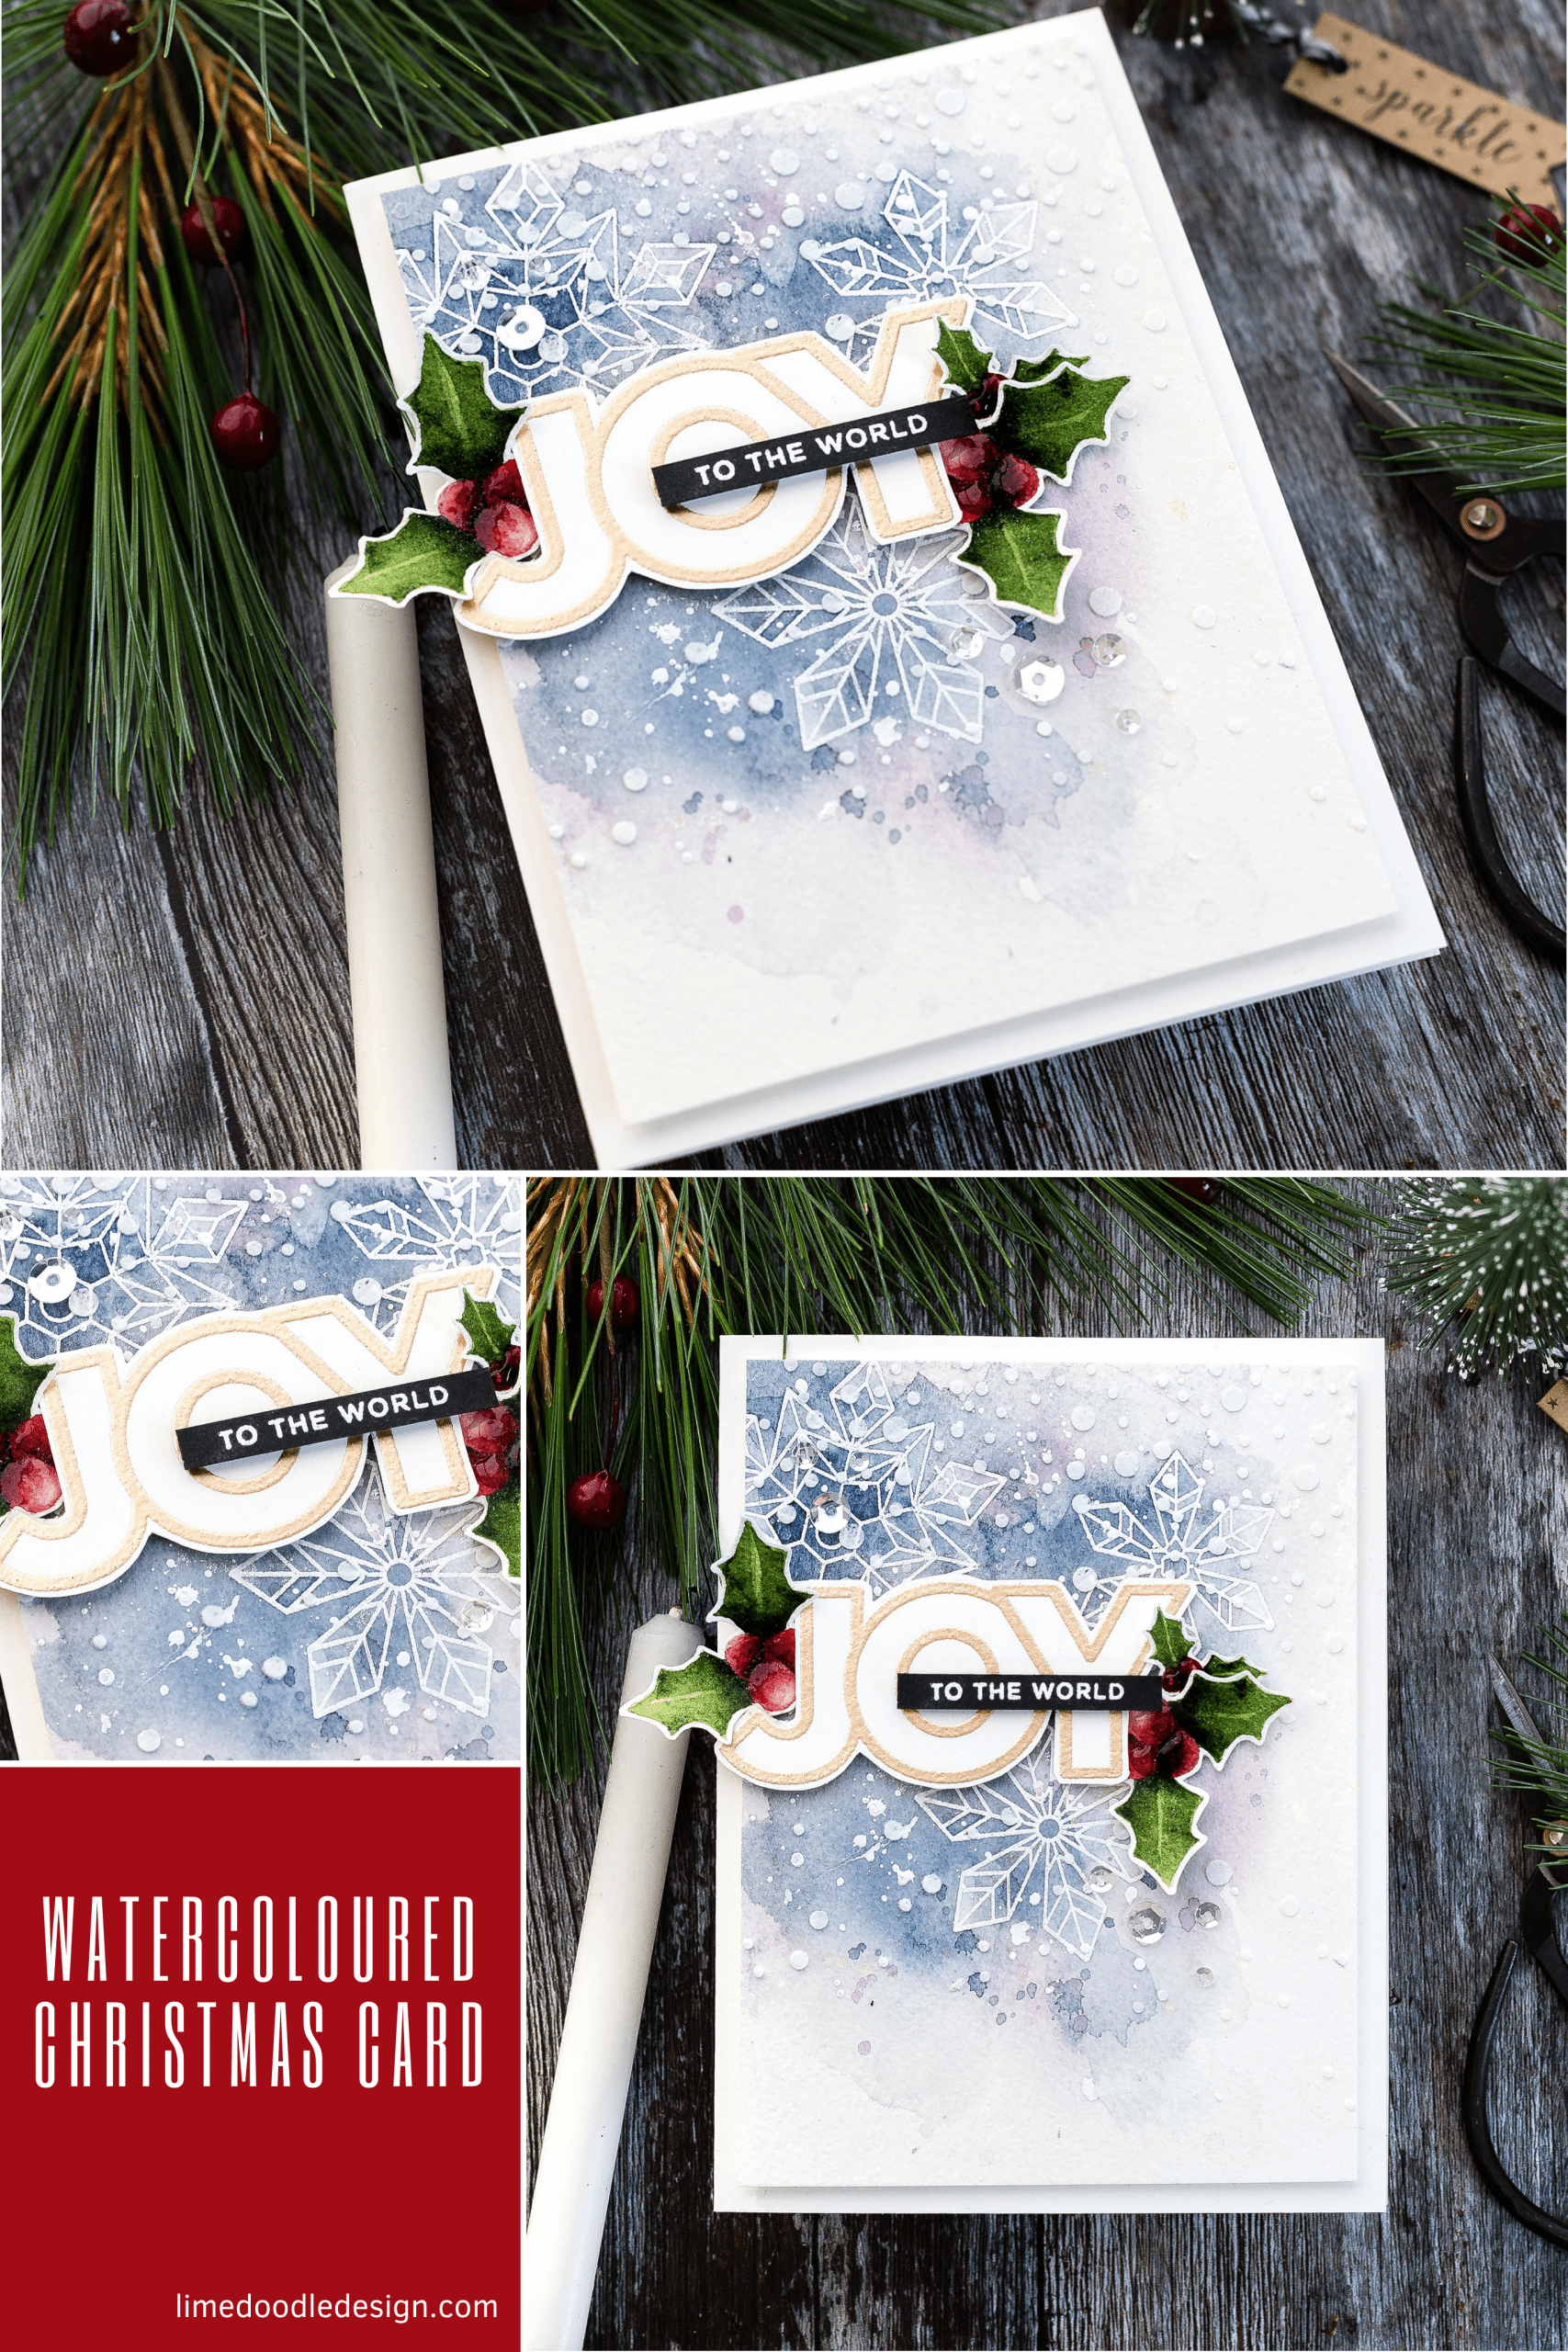 Watercoloured Christmas handmade card tutorial by Debby Hughes using supplies from Simon Says Stamp #watercolor #homemade